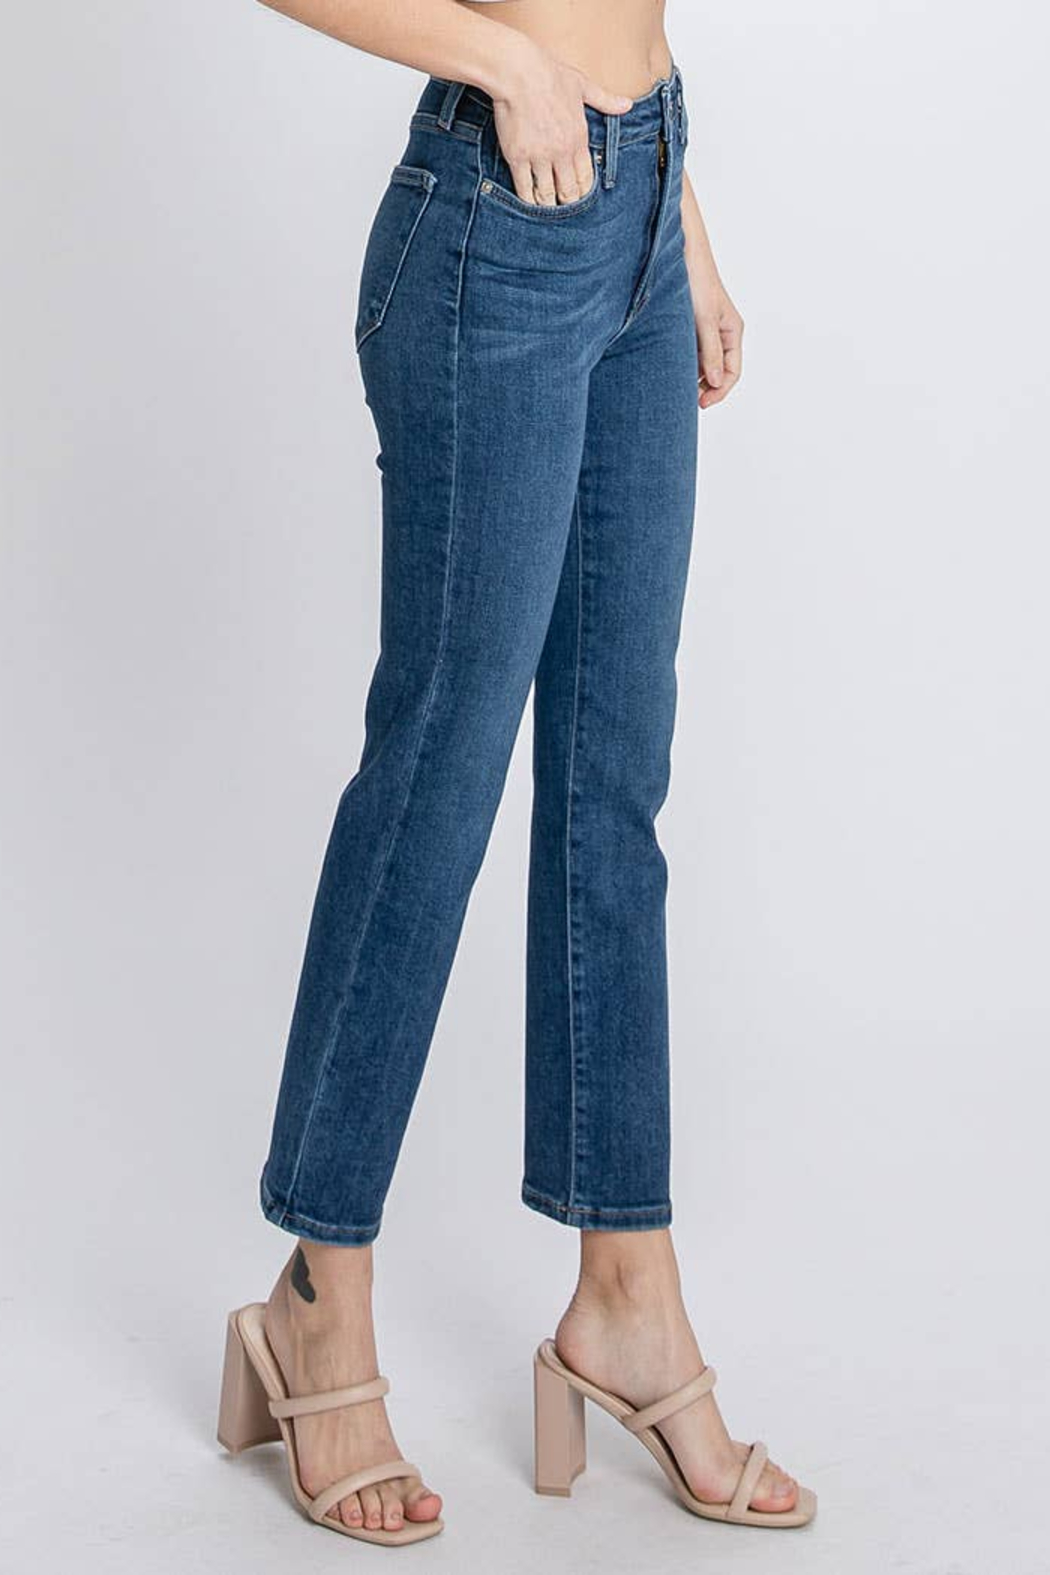 Letters to Juliet Siena High Rise Straight Leg Jean - Front Full Image